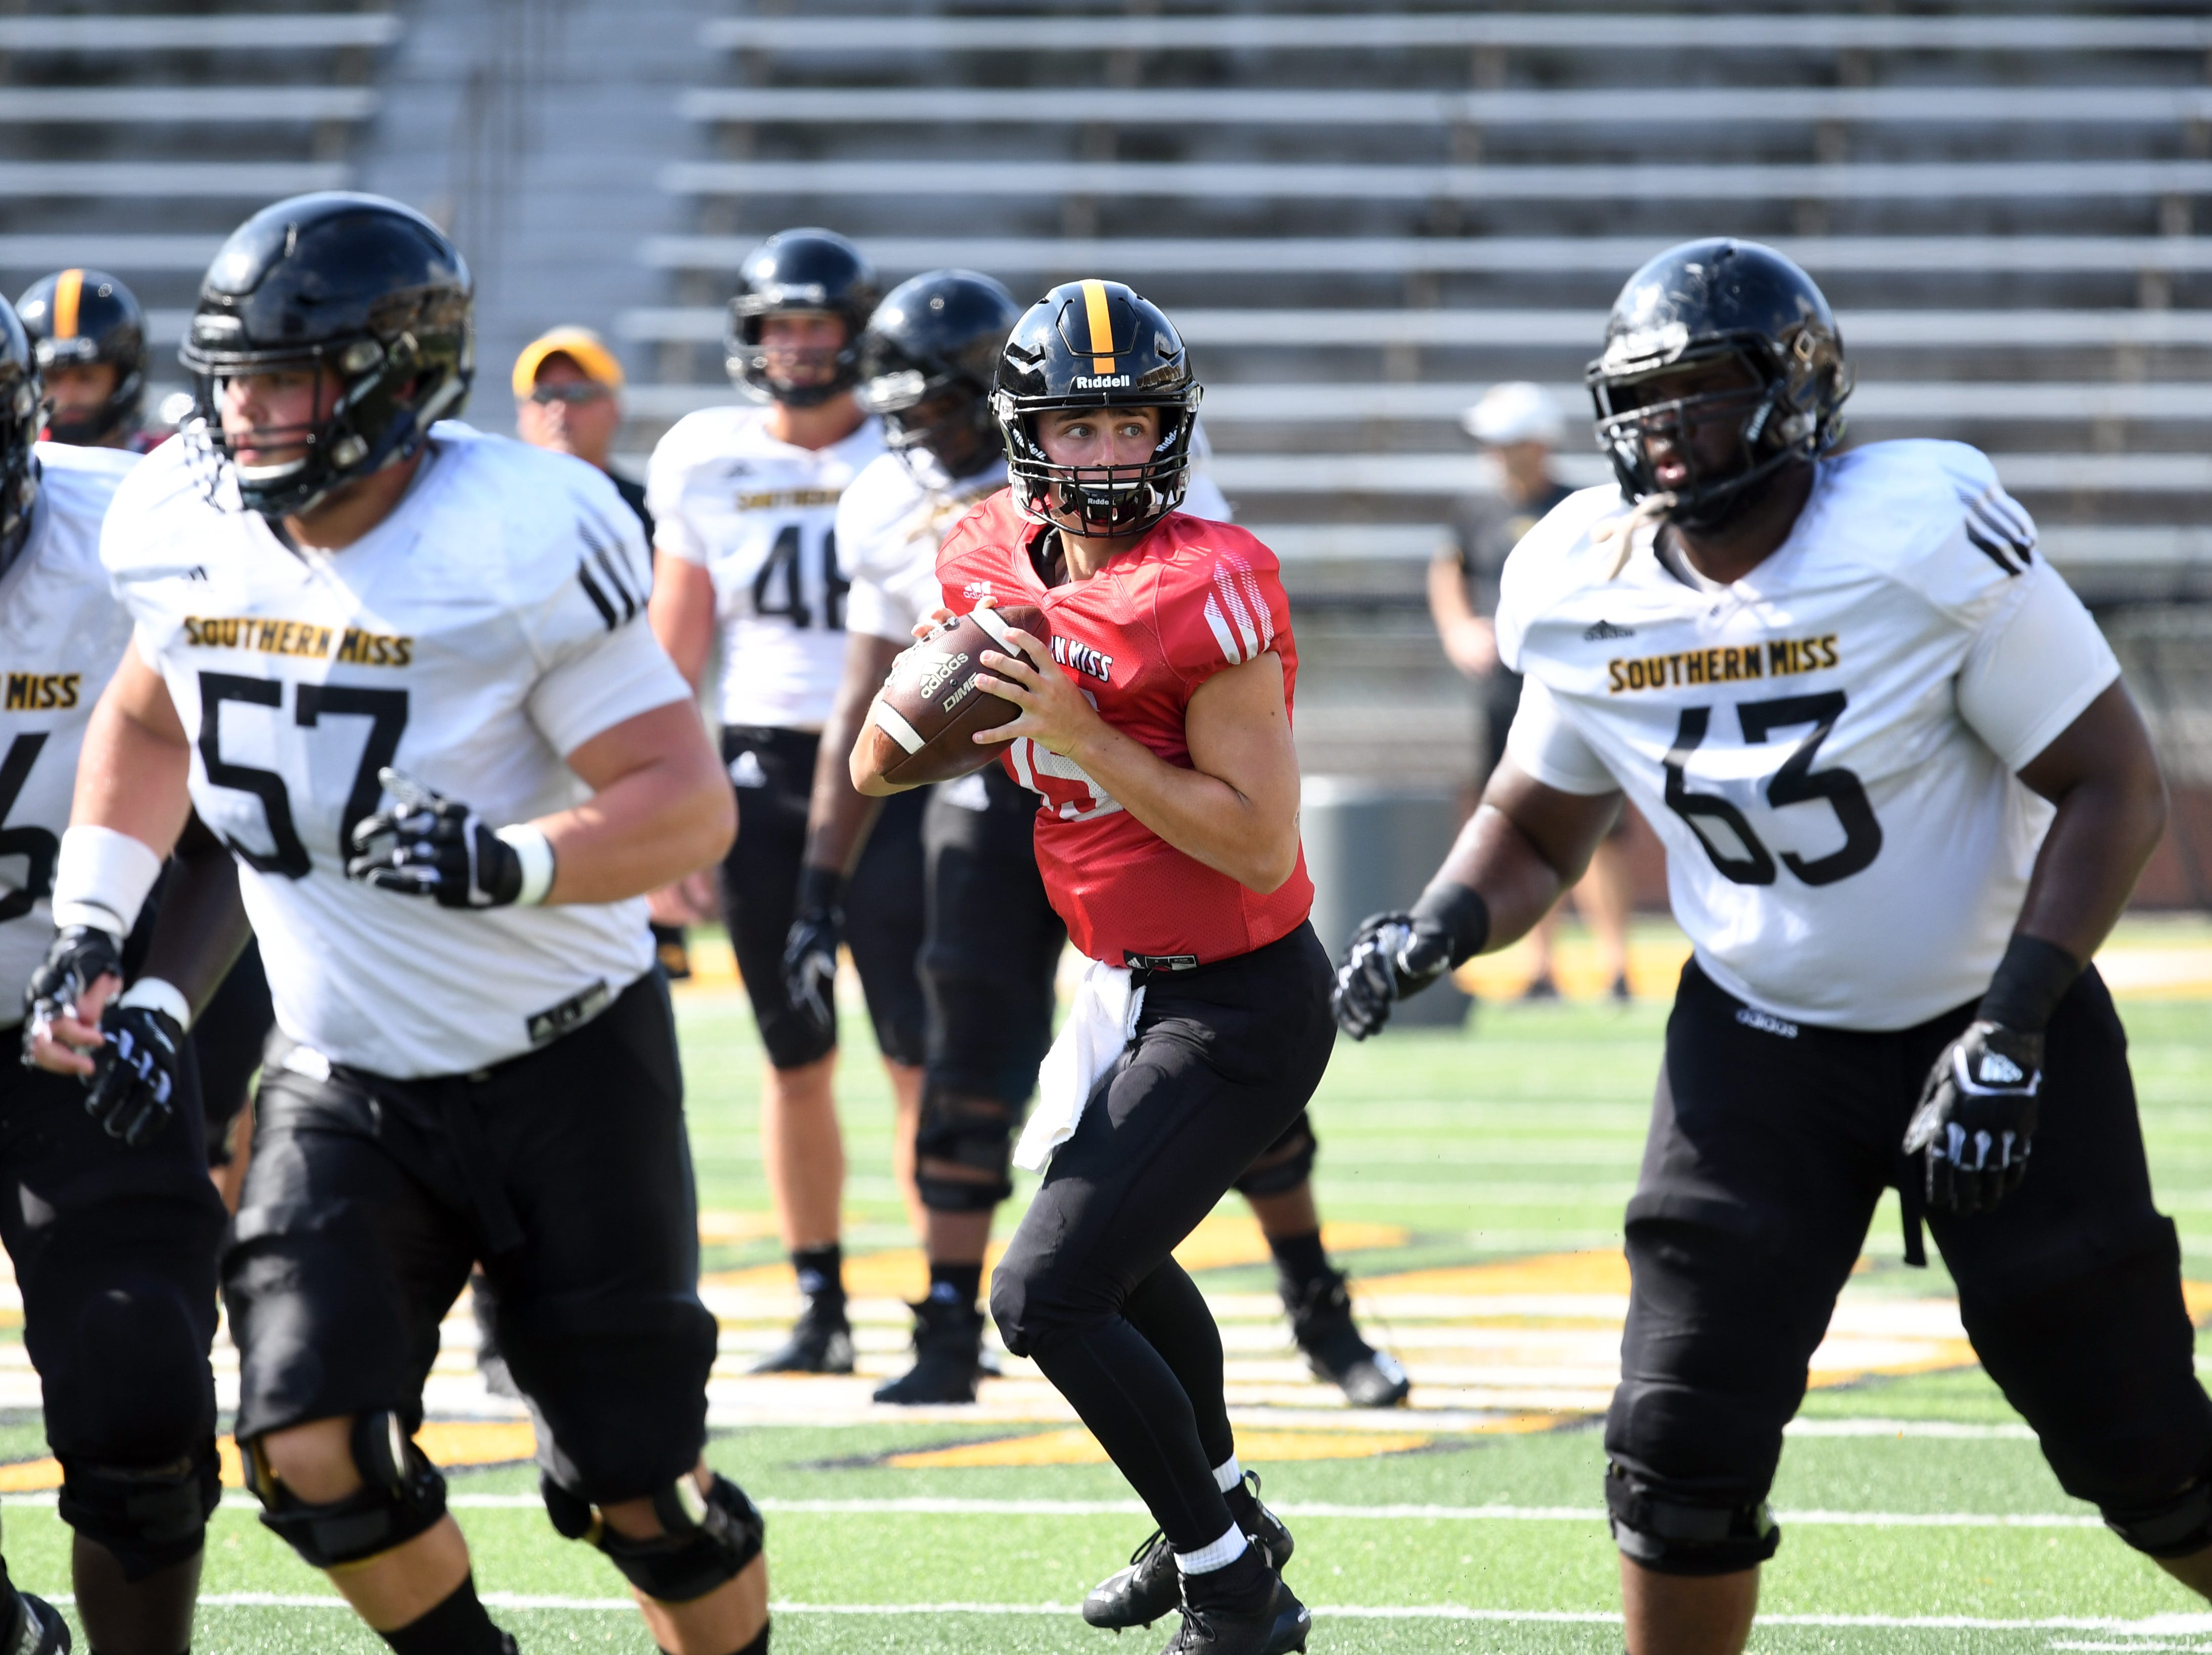 Southern Miss quarterback Jack Abraham looks for his receiver during the teams last week of fall camp on Monday, August 20, 2018.